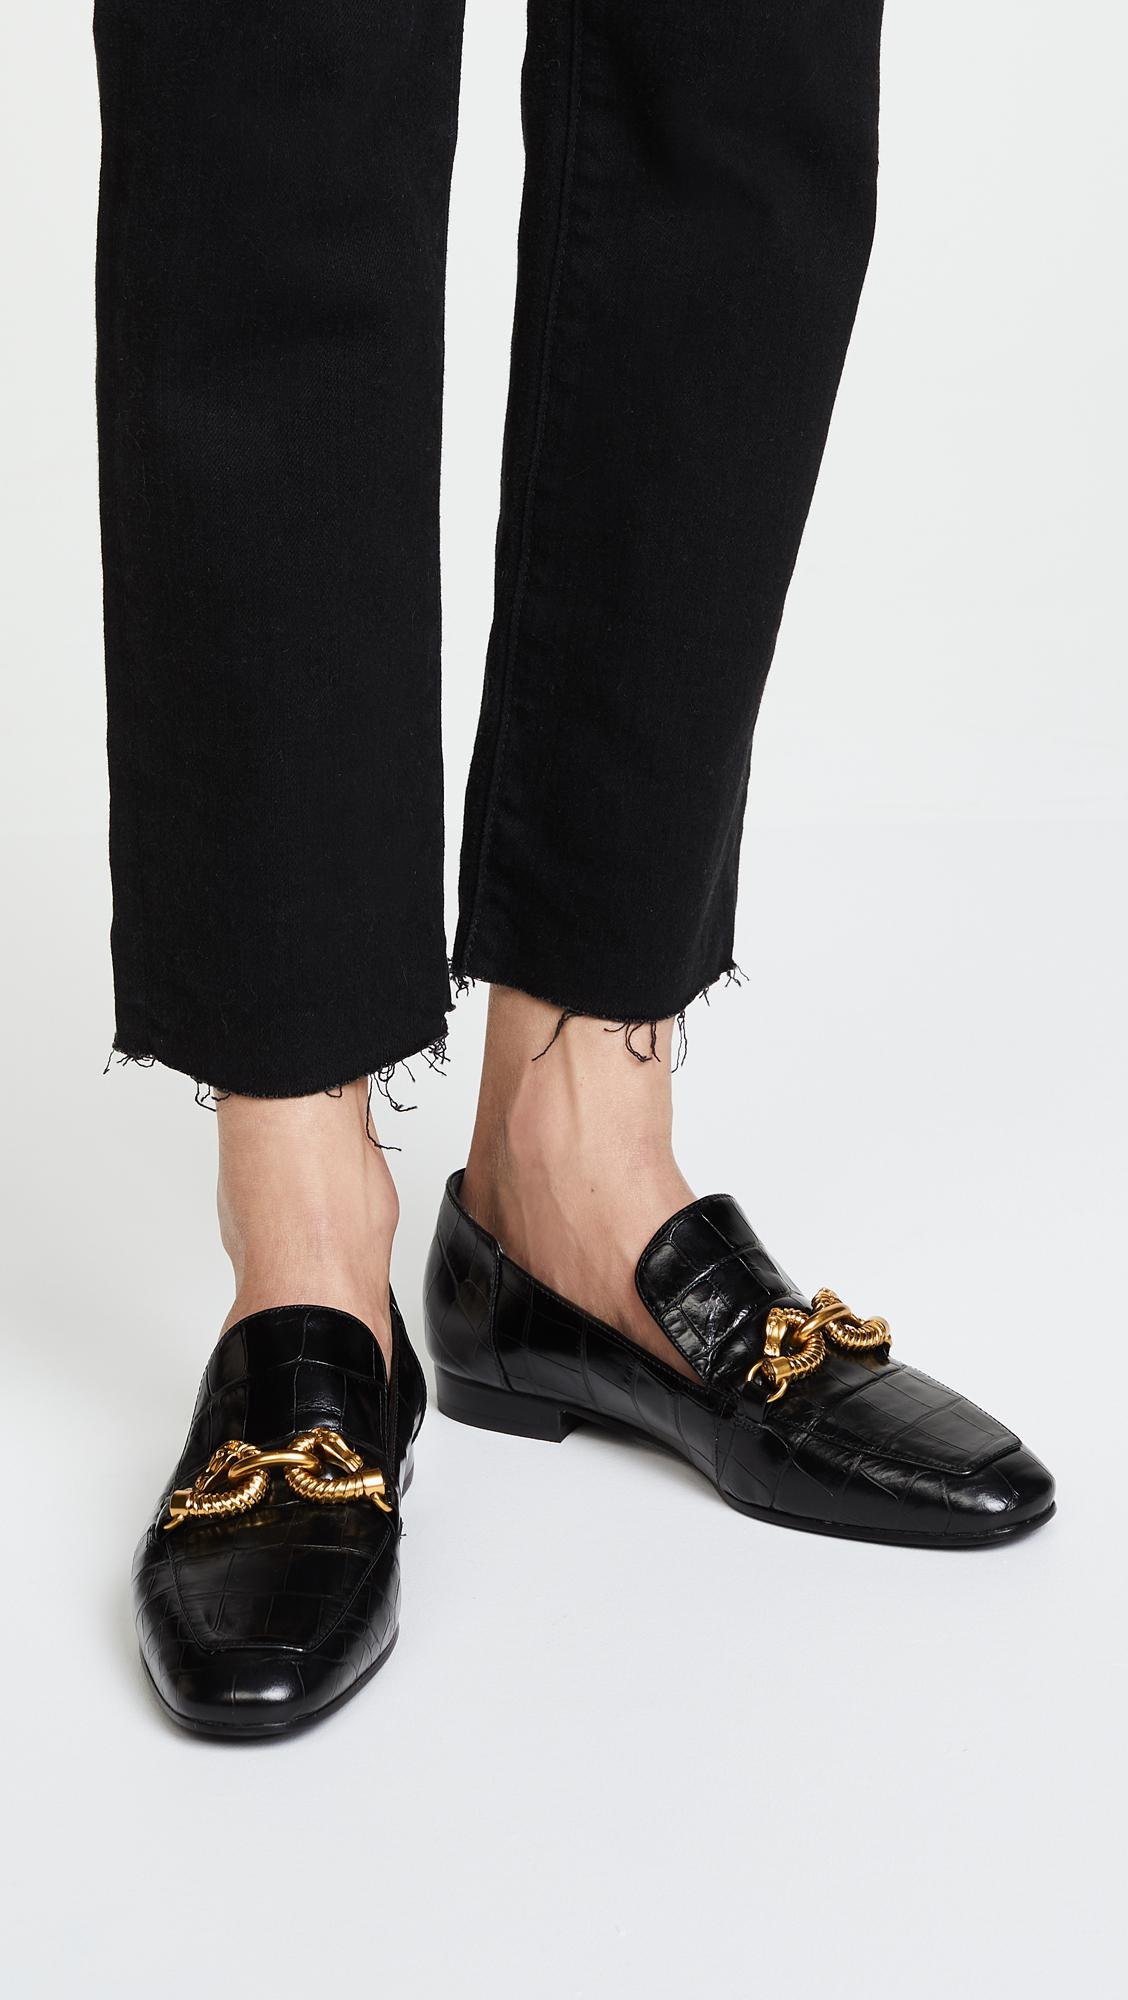 5a206ff03 Lyst - Tory Burch Jessa Horse Hardware Loafers in Black